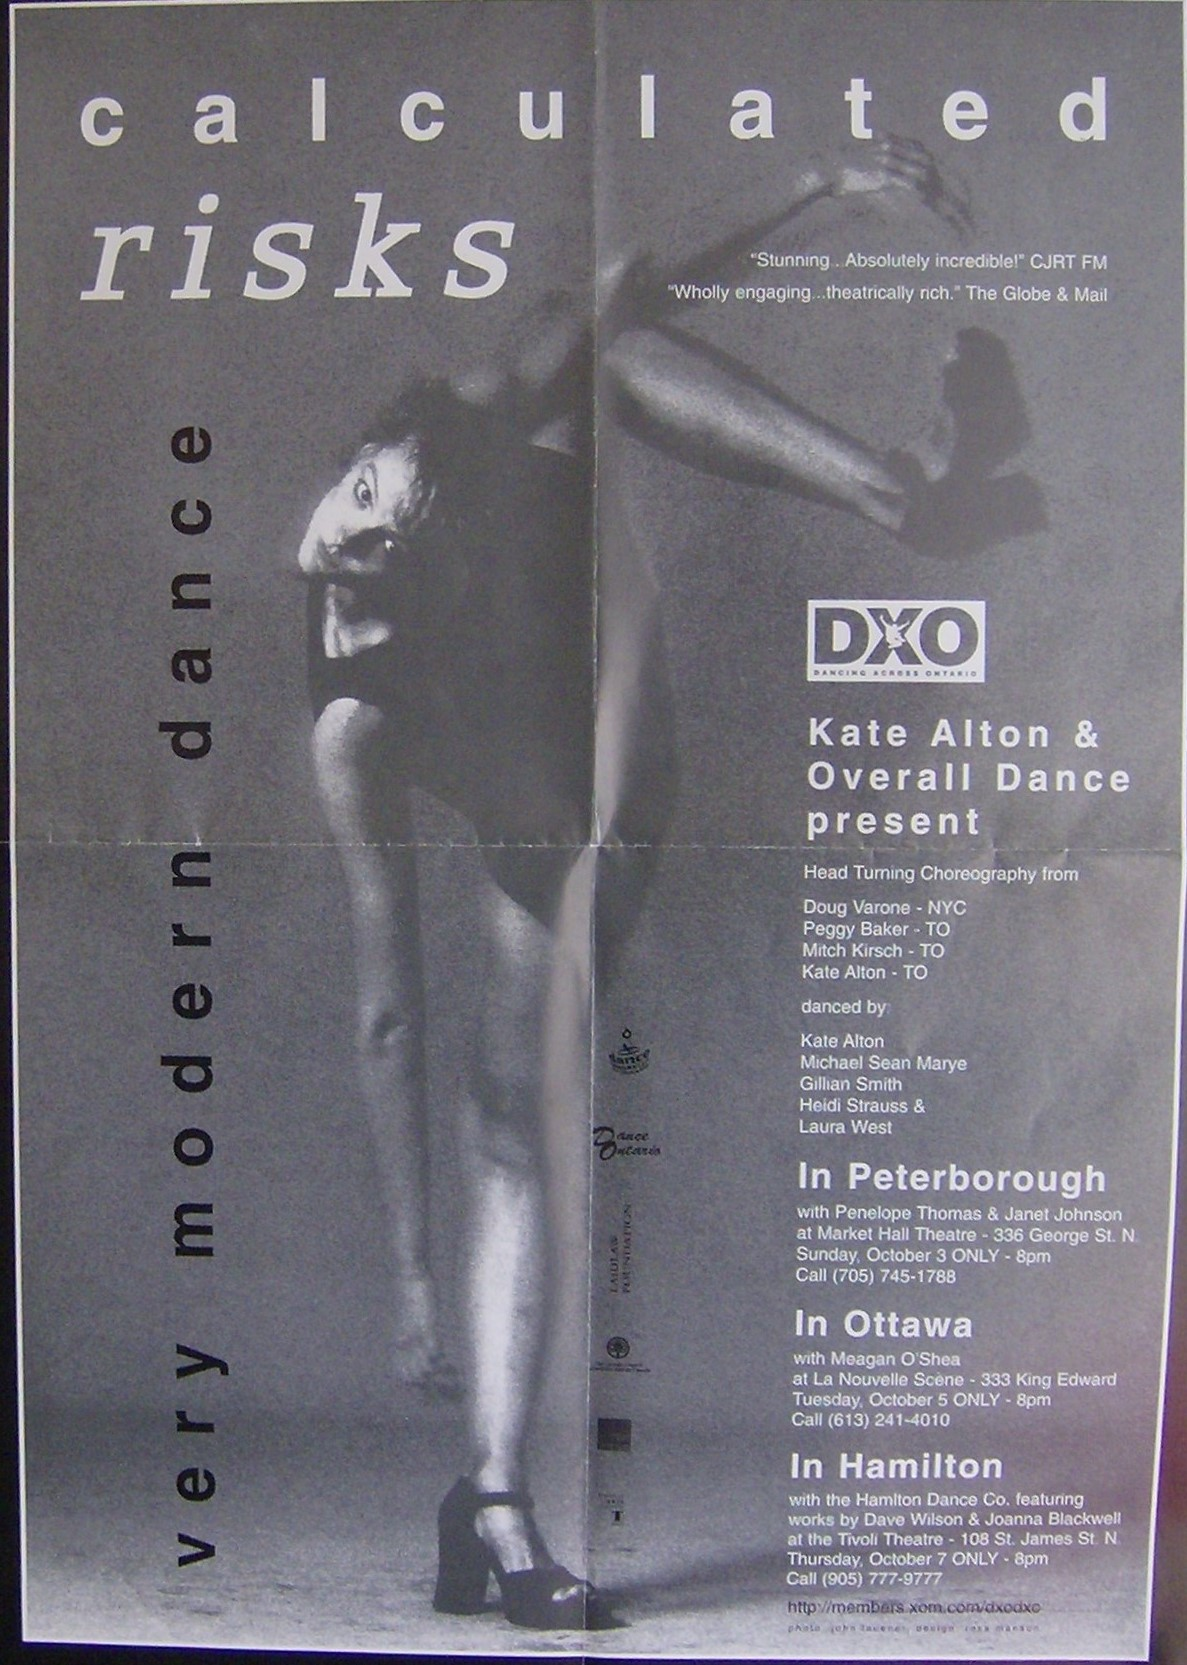 Overall Dance – Calculated Risks  in the photo.